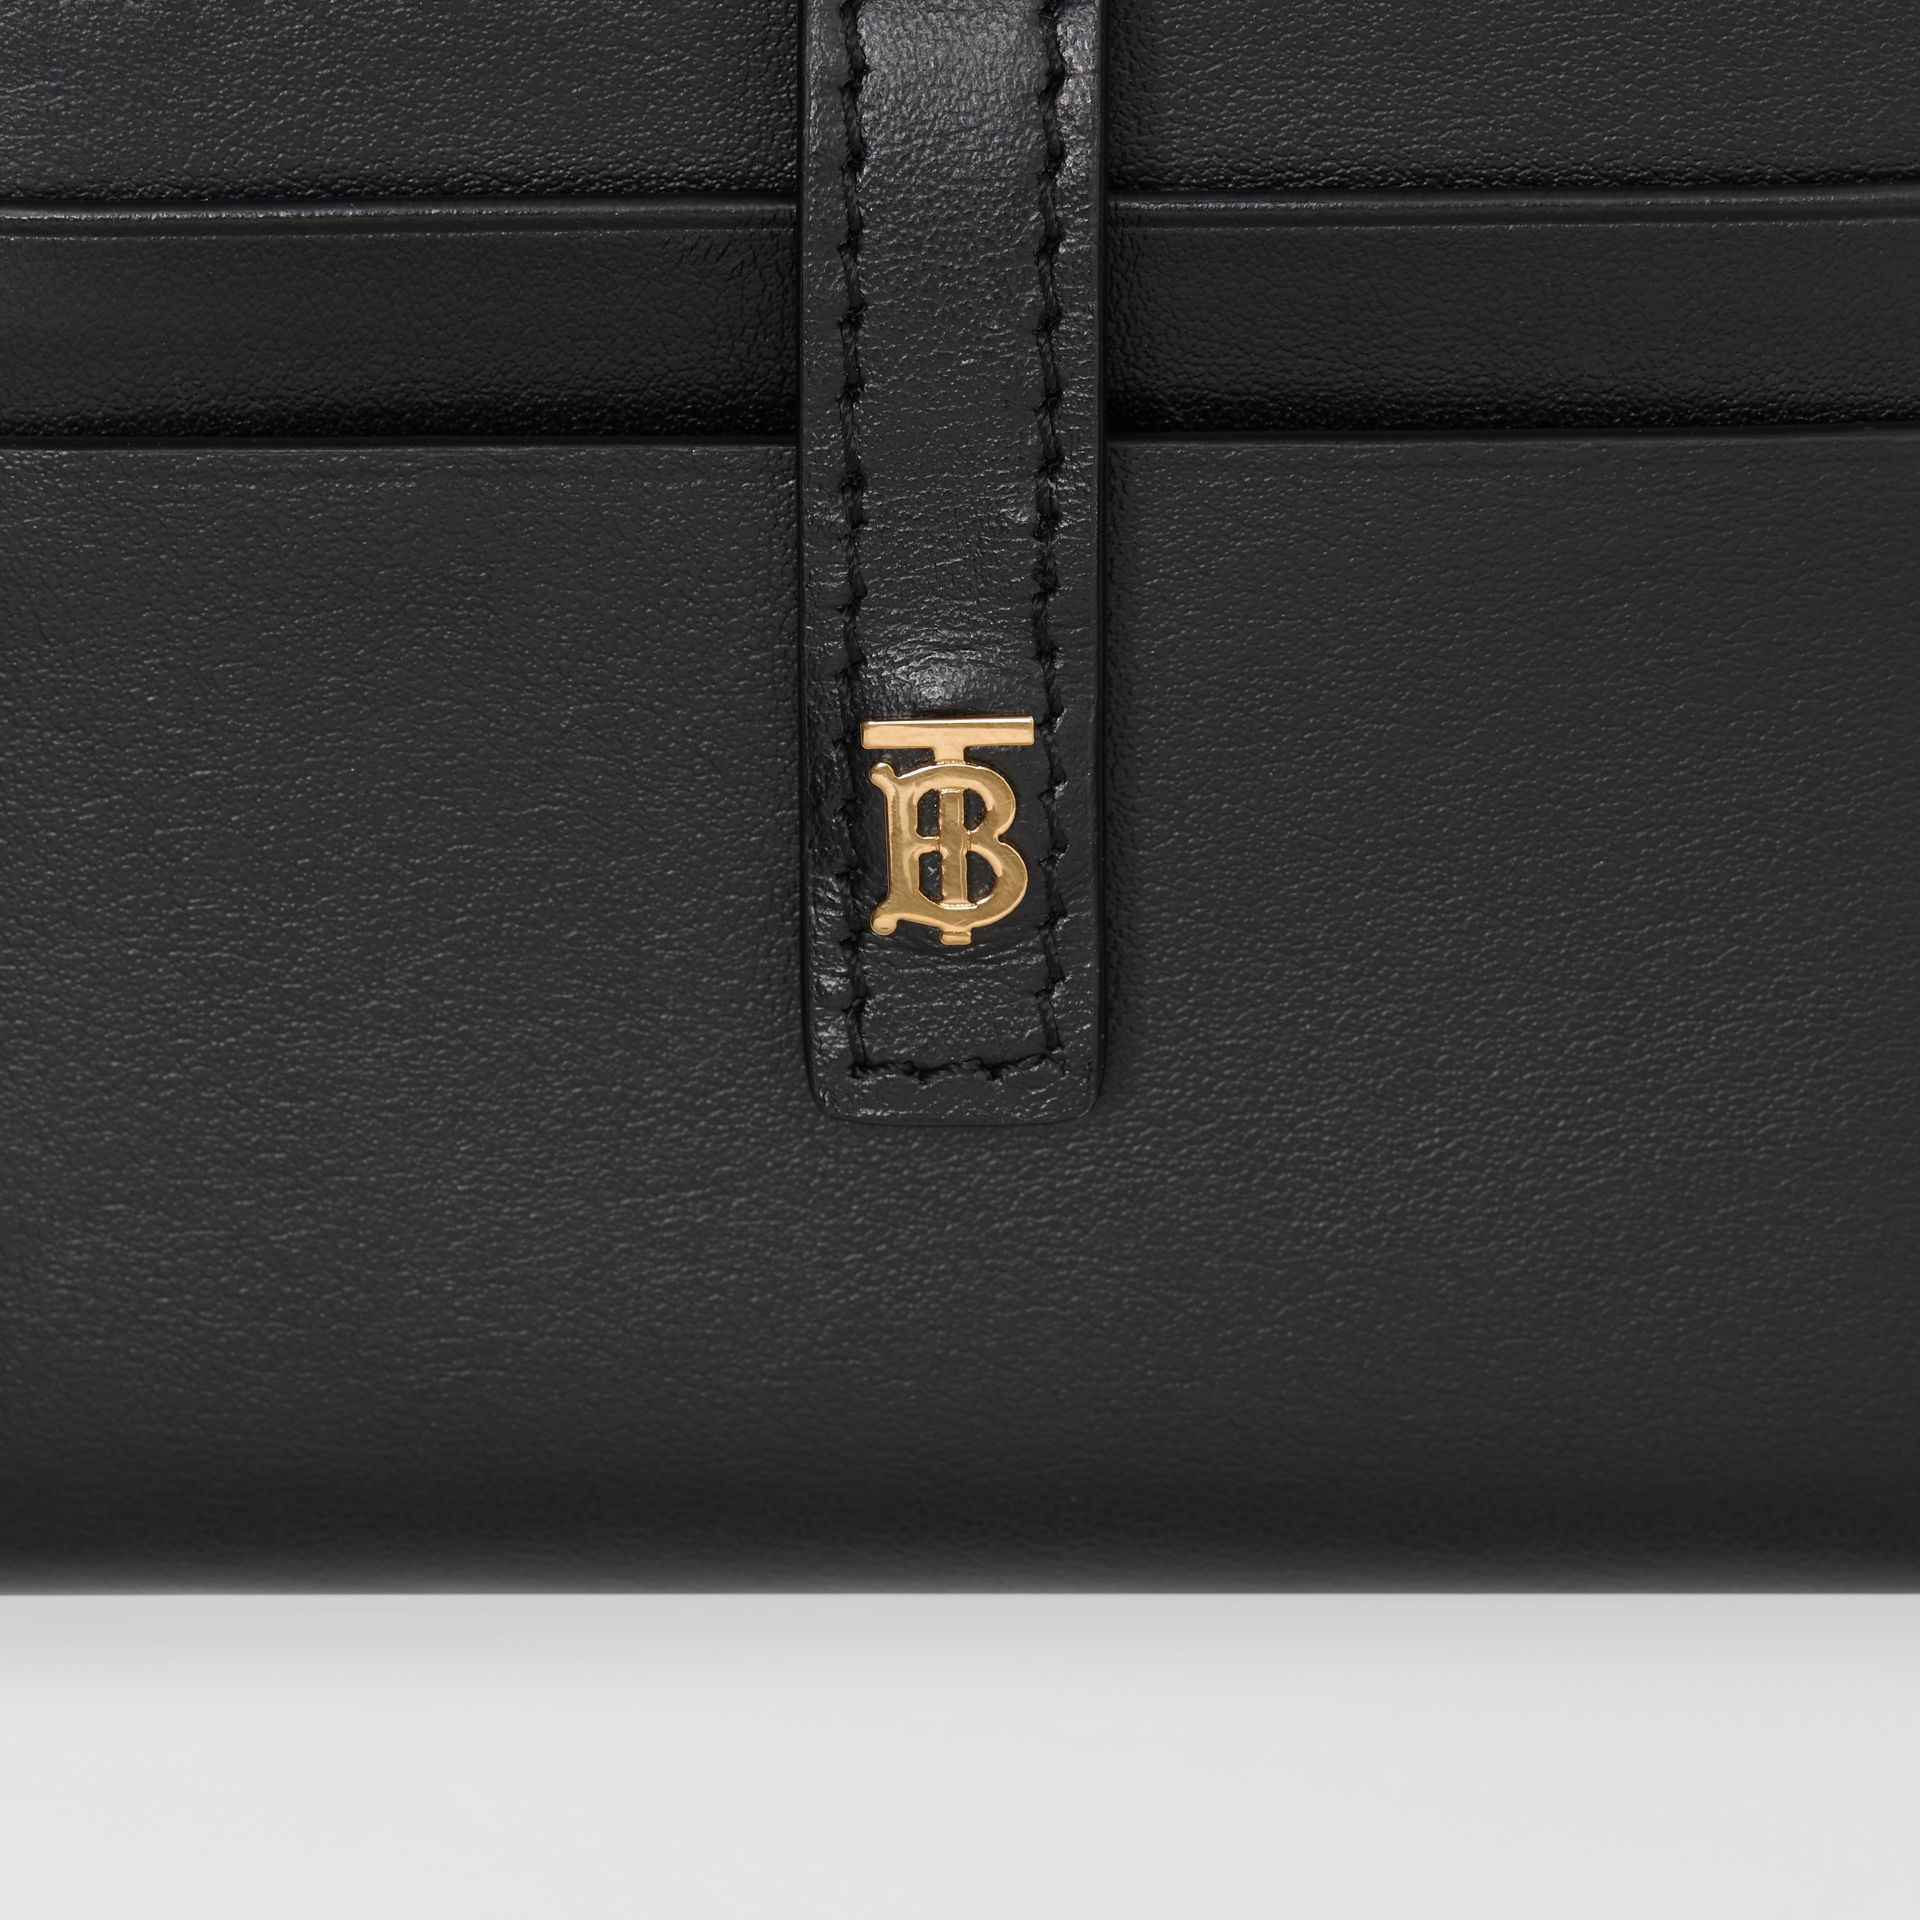 Monogram Motif Leather Folding Card Case in Black - Women | Burberry Singapore - gallery image 1